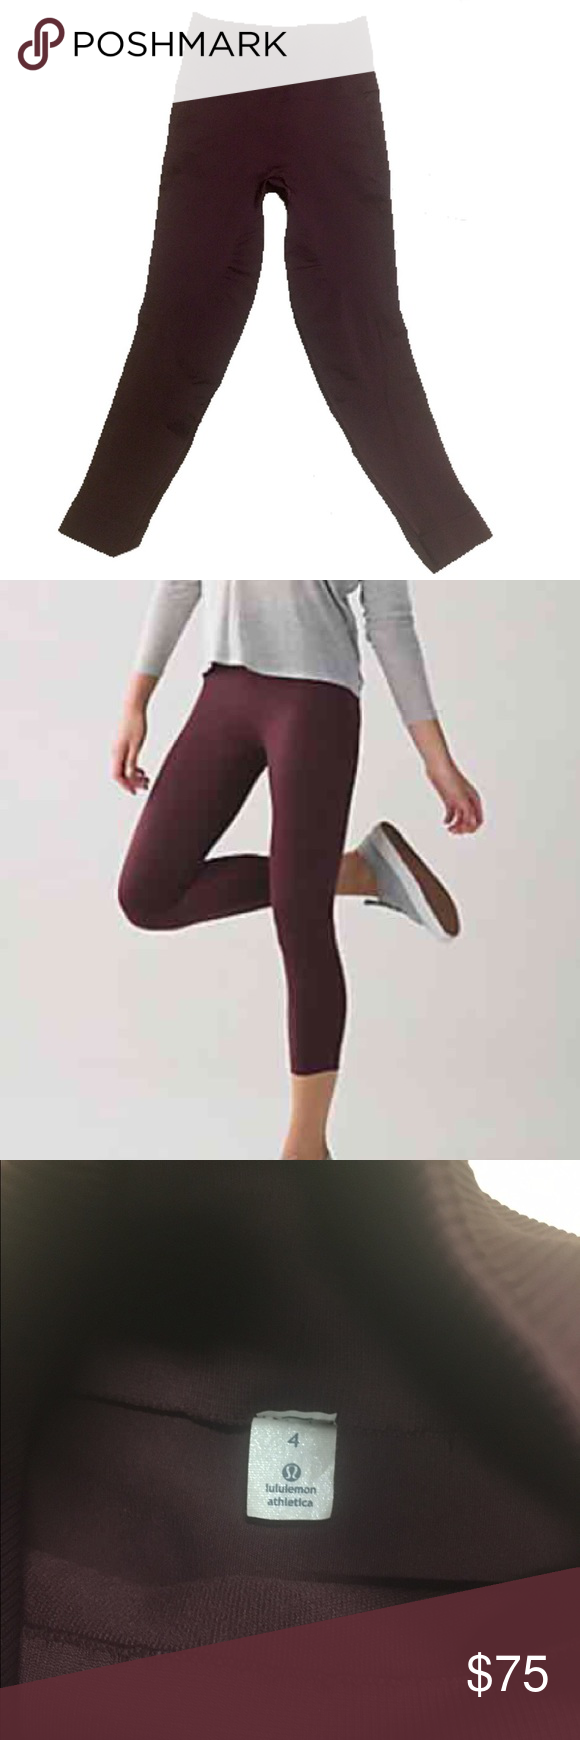 ce7c4a13 Lululemon Zone In leggings Lululemon compression leggings size 4. EUC.  Maroon color, just like shown in the model! Sold out everywhere ! lululemon  athletica ...